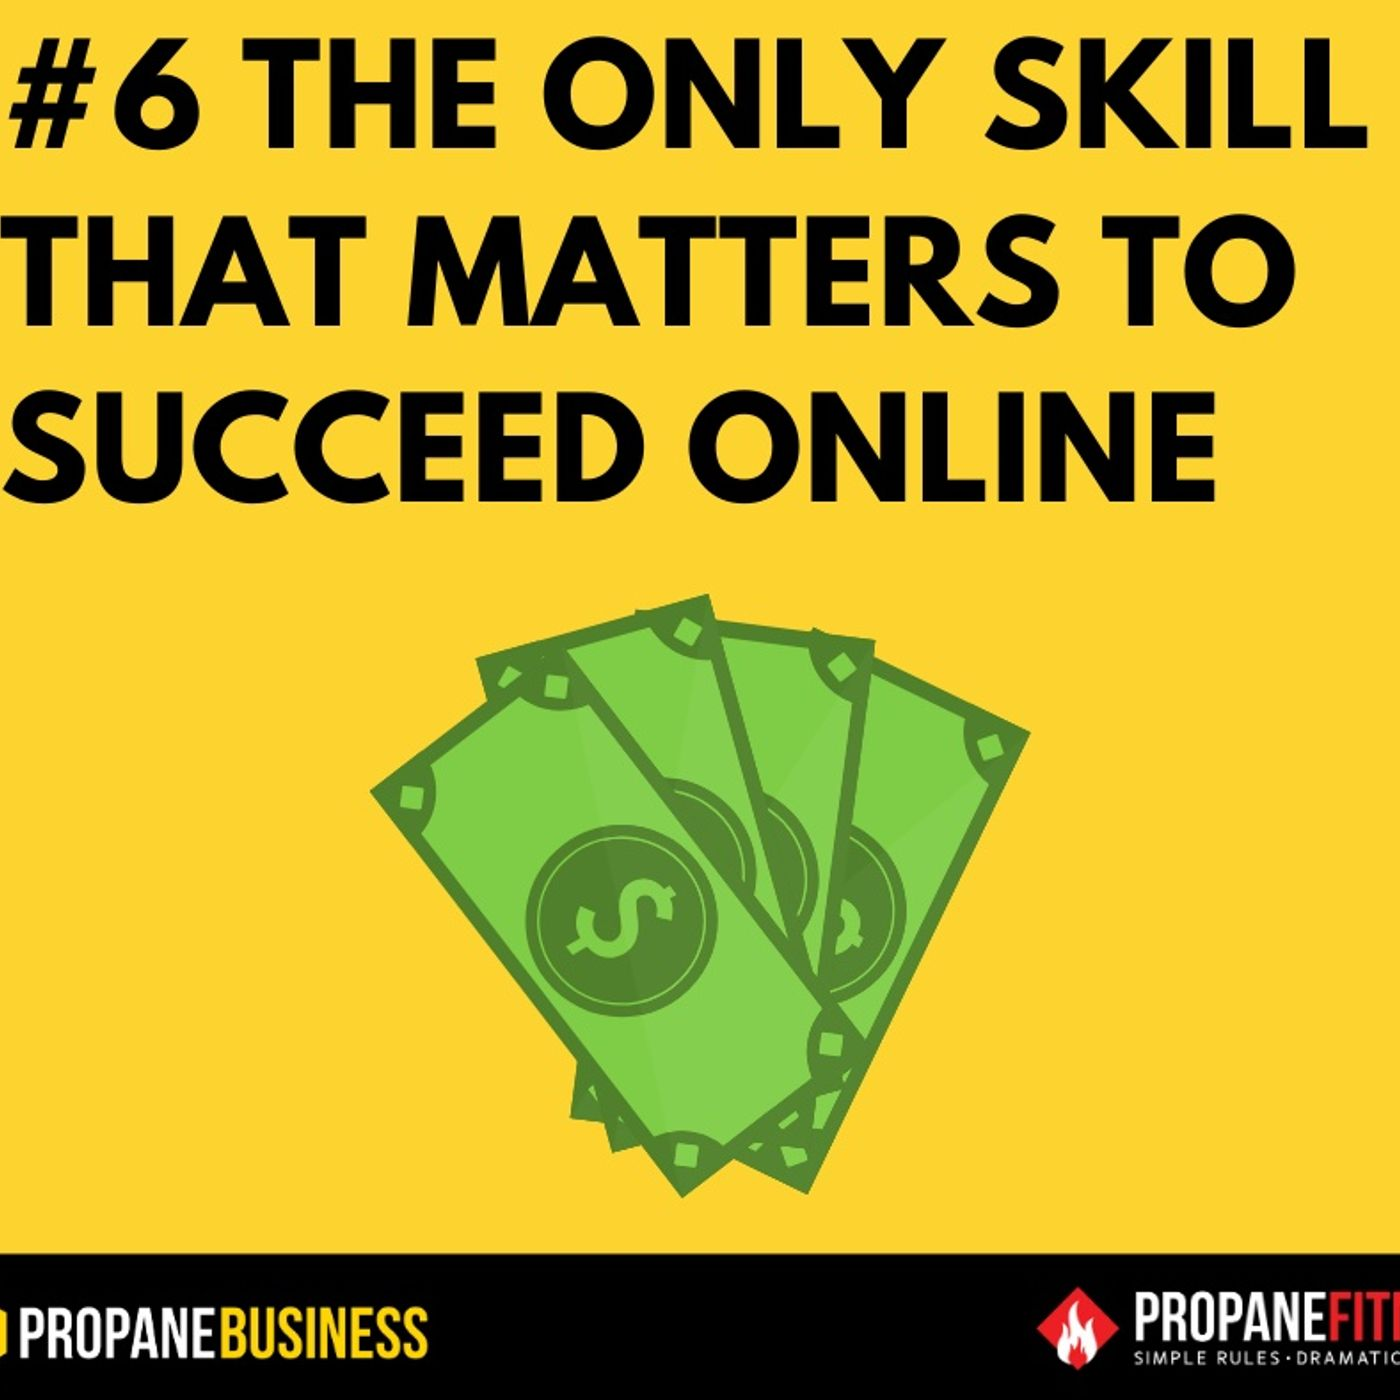 6. The only skill that matters to succeed online